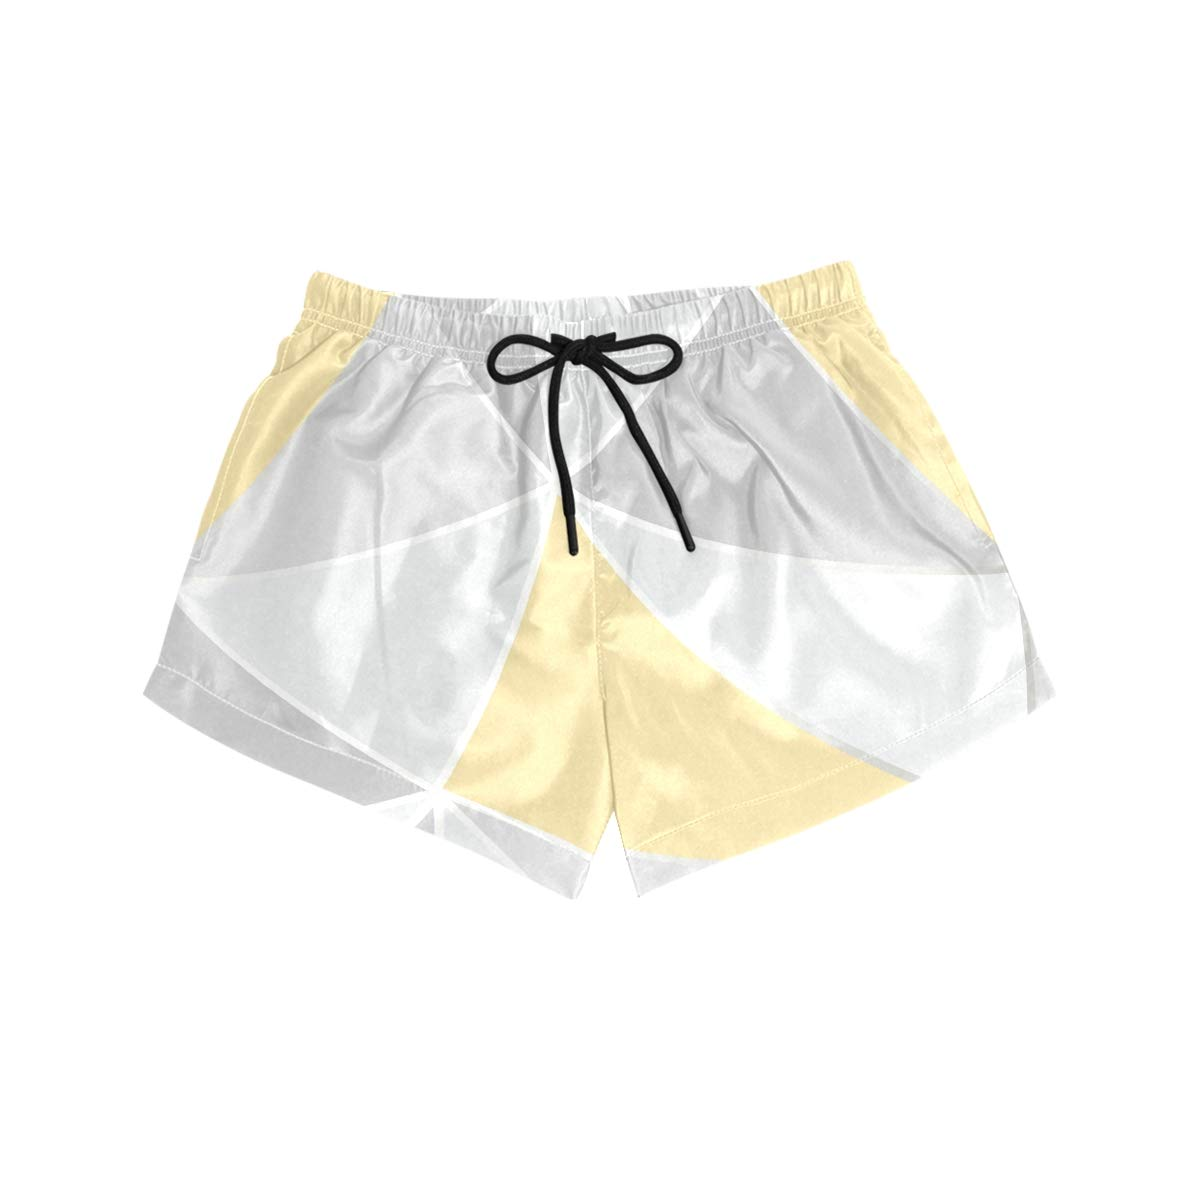 NWTSPY Grey and Yellow Triangle Womens Sport Beach Swim Shorts Board Shorts Swimsuit with Mesh Lining